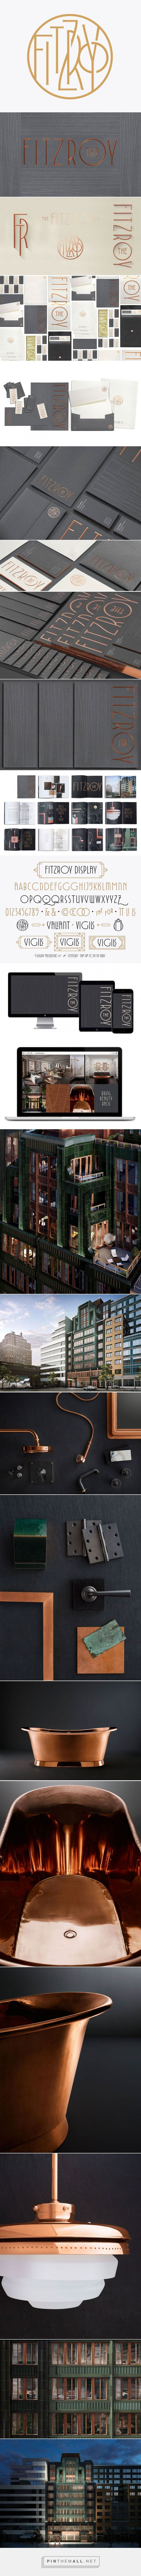 The Fitzroy | Kevin Cantrell on Behance - created via https://pinthemall.net